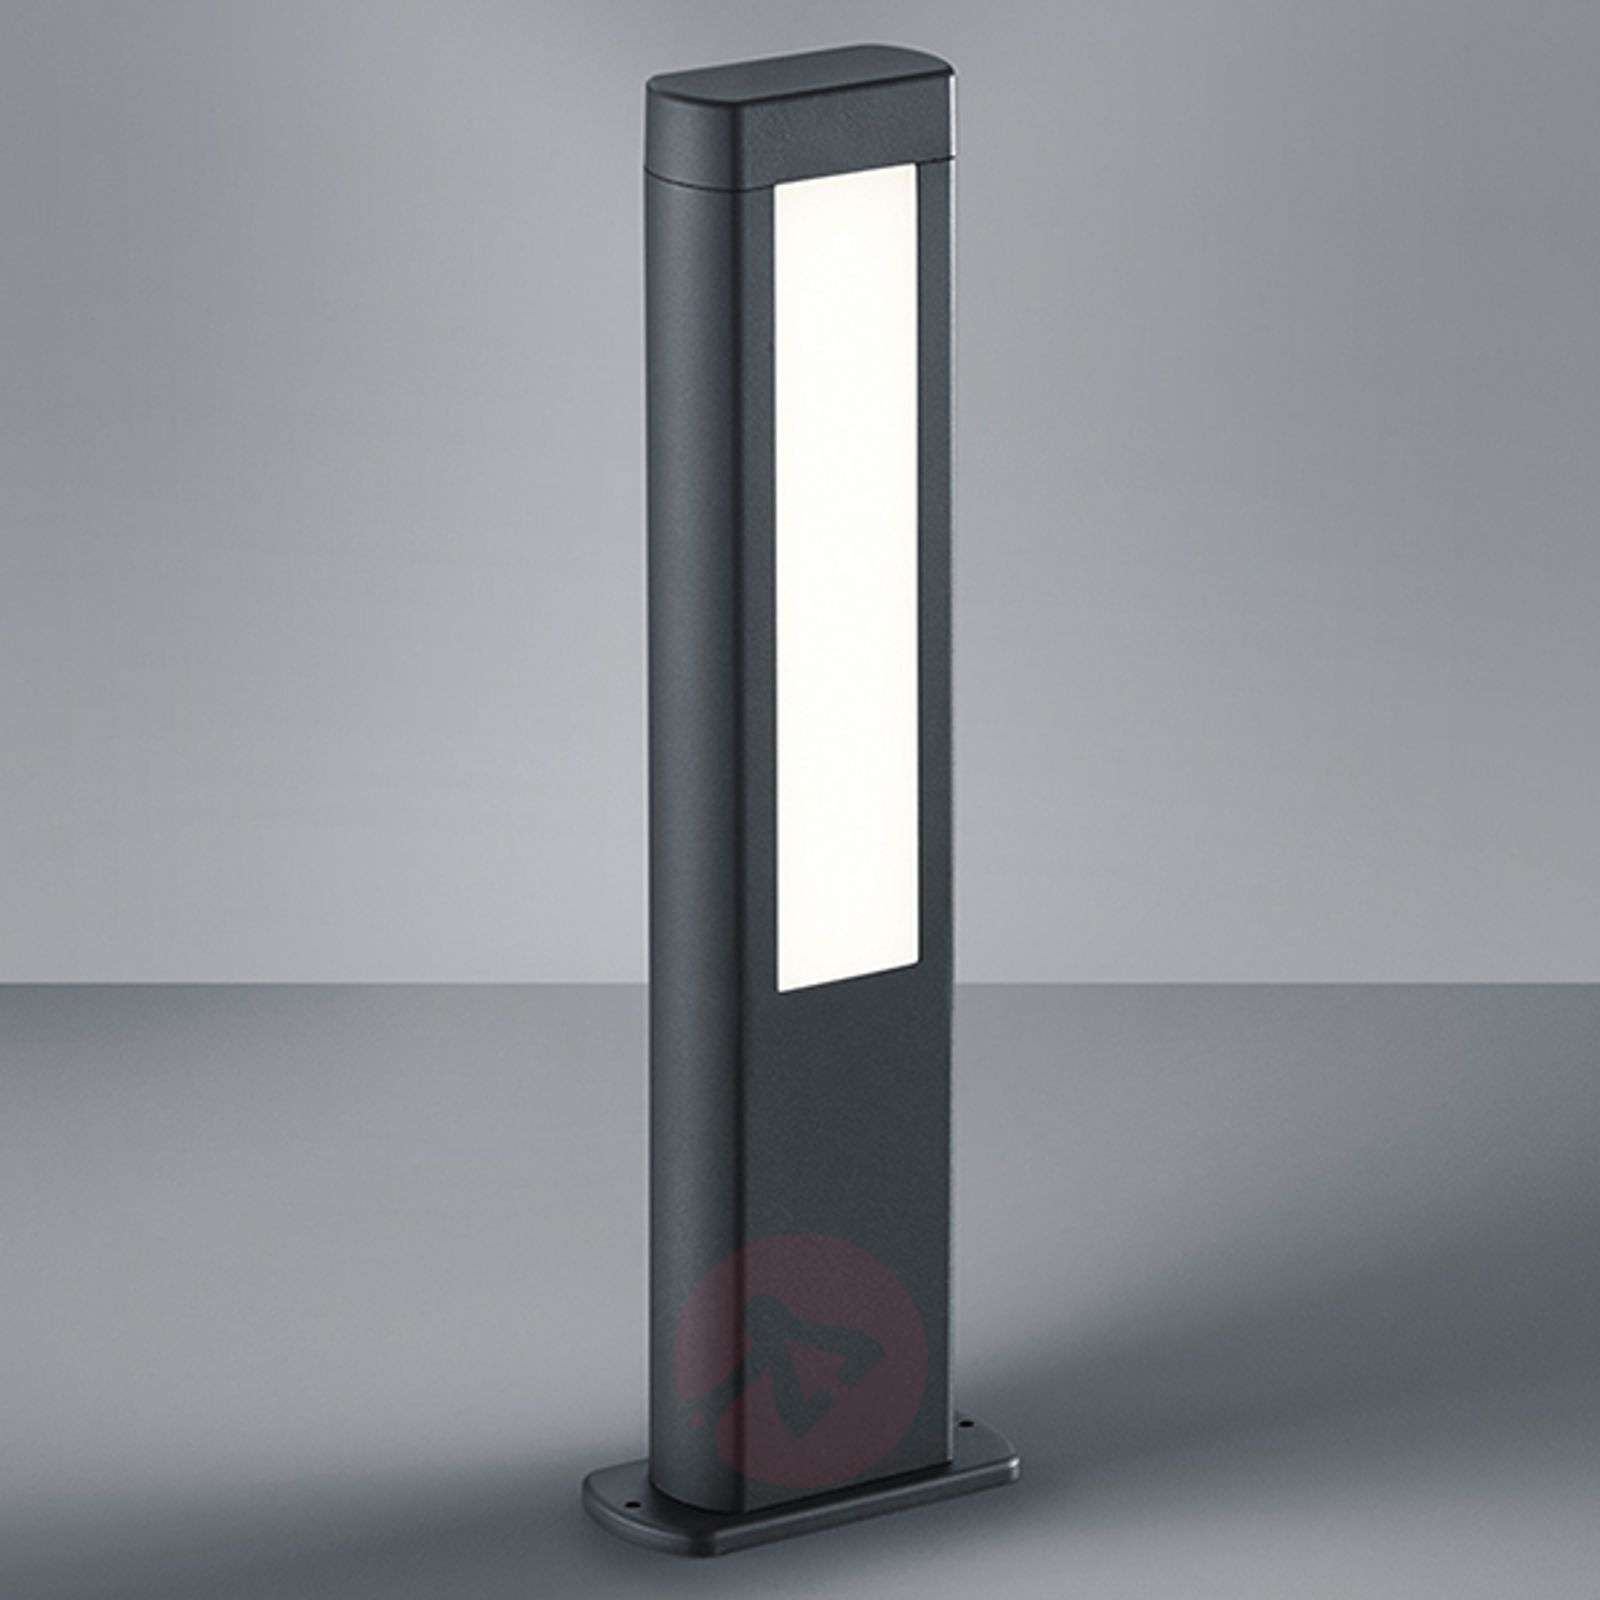 50 cm high LED pillar light Rhine-9005215-01